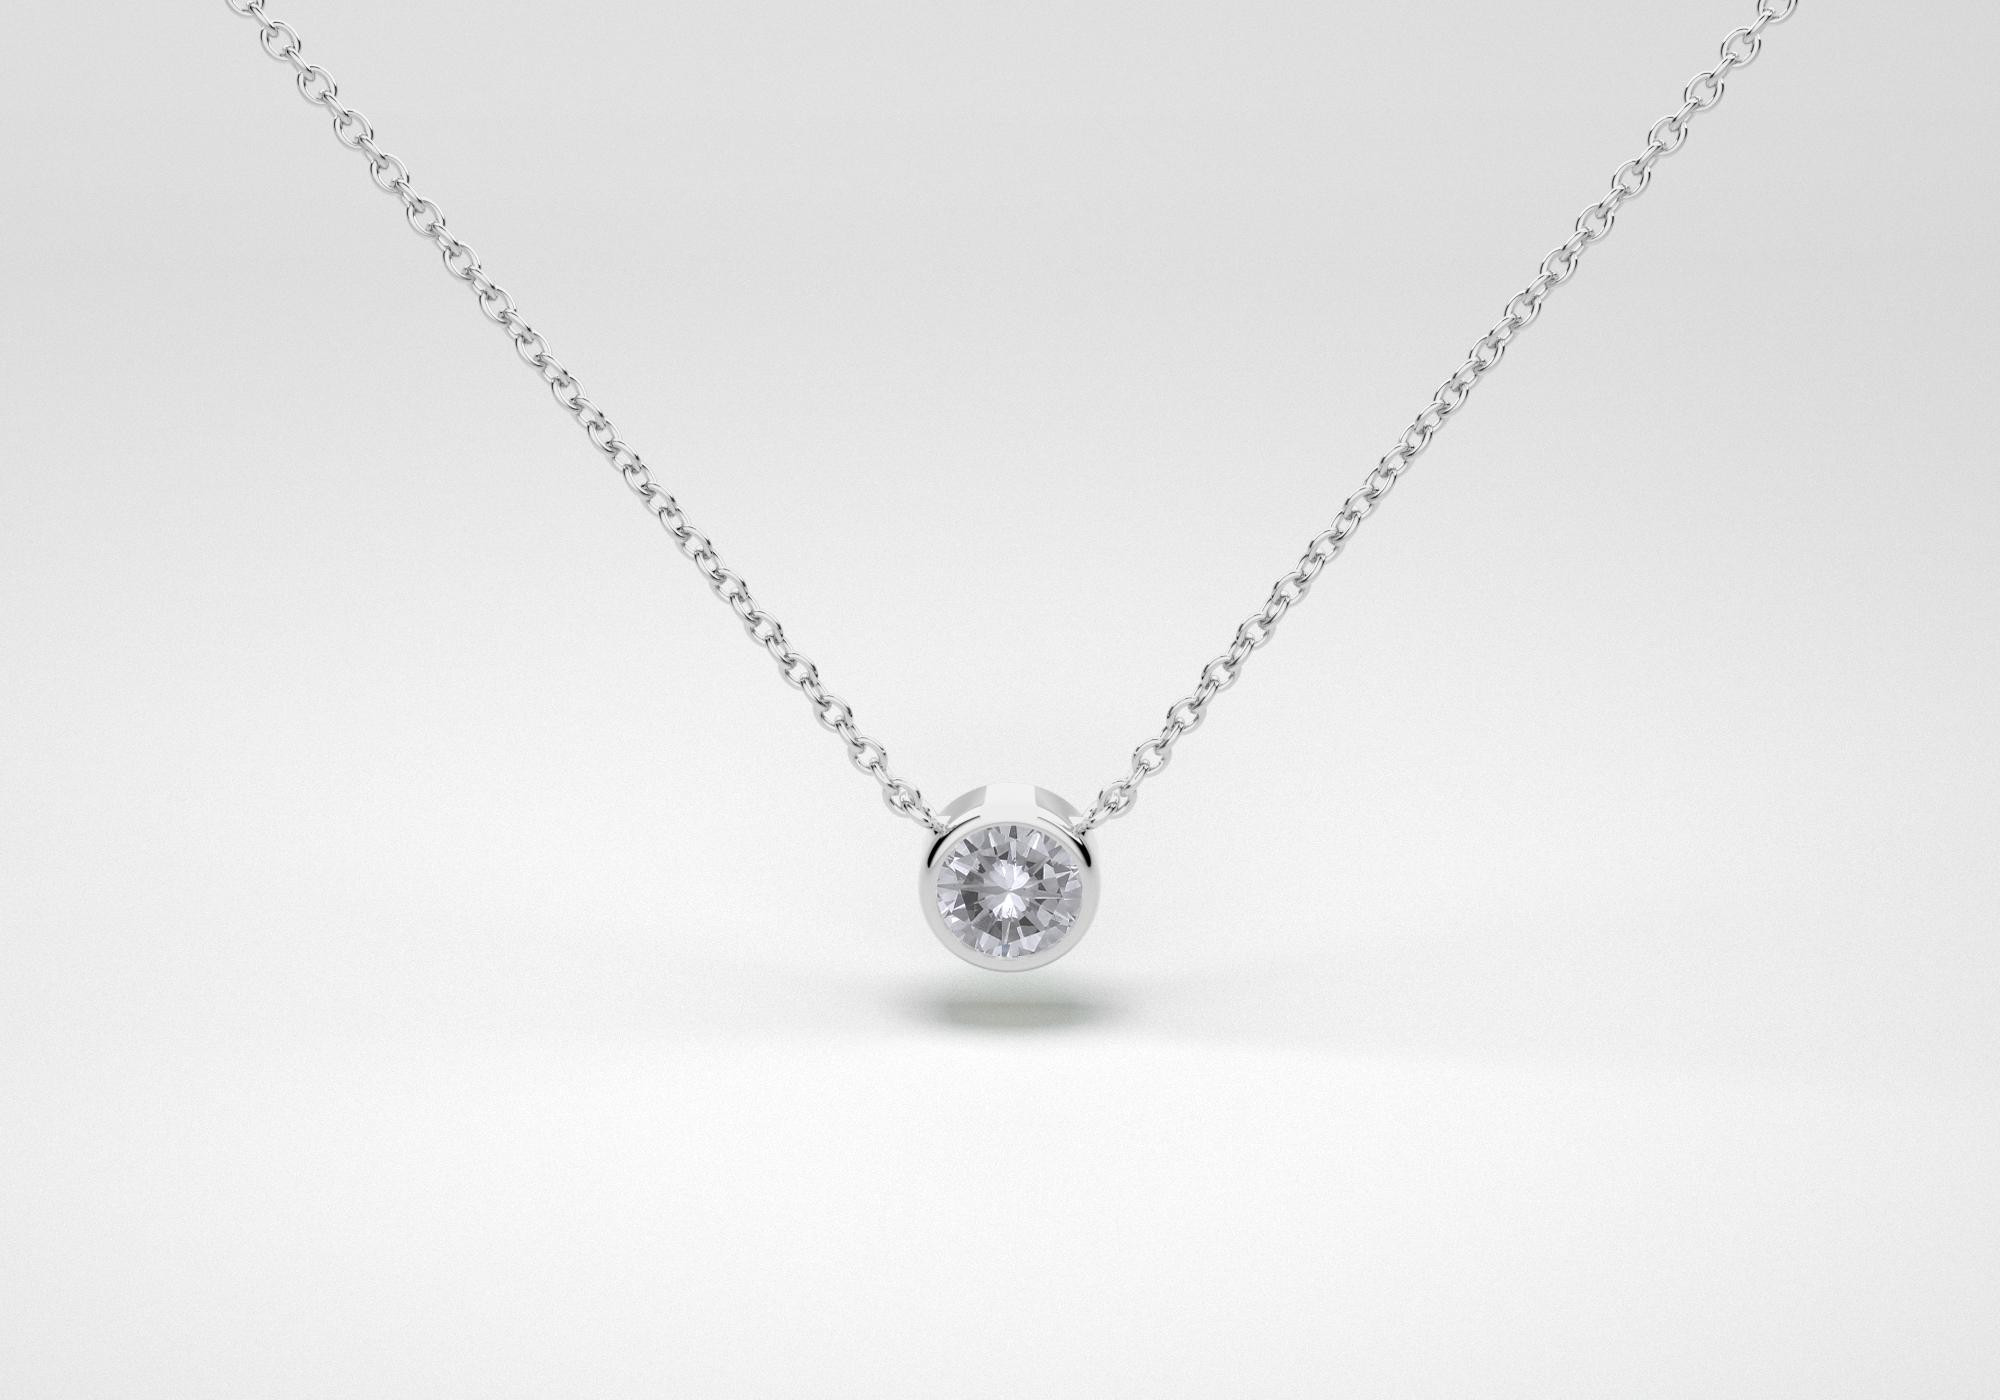 The One Necklace - Gray - White Gold 18 Kt